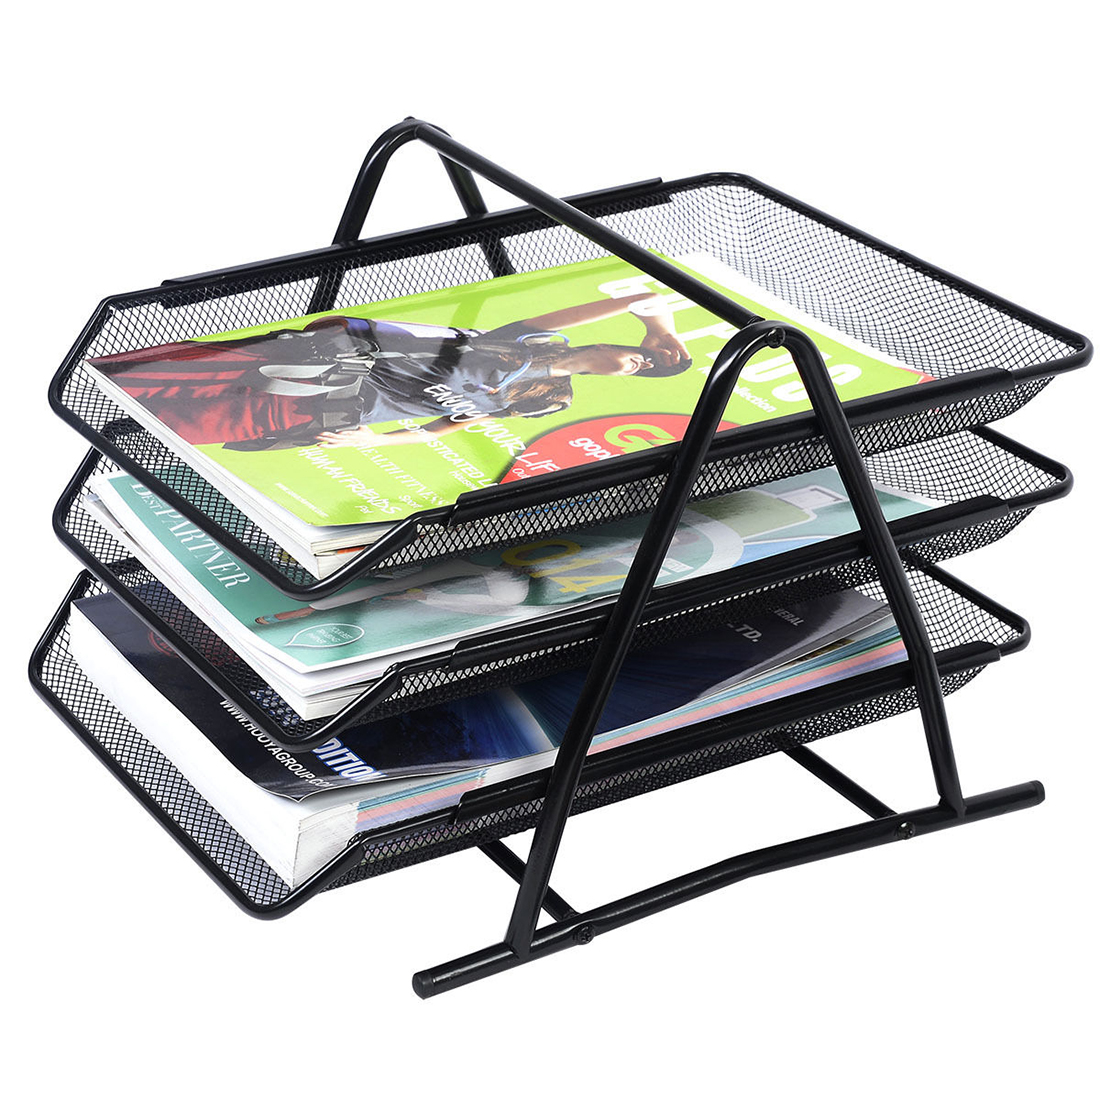 Metal A4 Paper Office Mesh Document File Paper Letter Tray Organiser Holder In  File Tray From Office U0026 School Supplies On Aliexpress.com   Alibaba Group